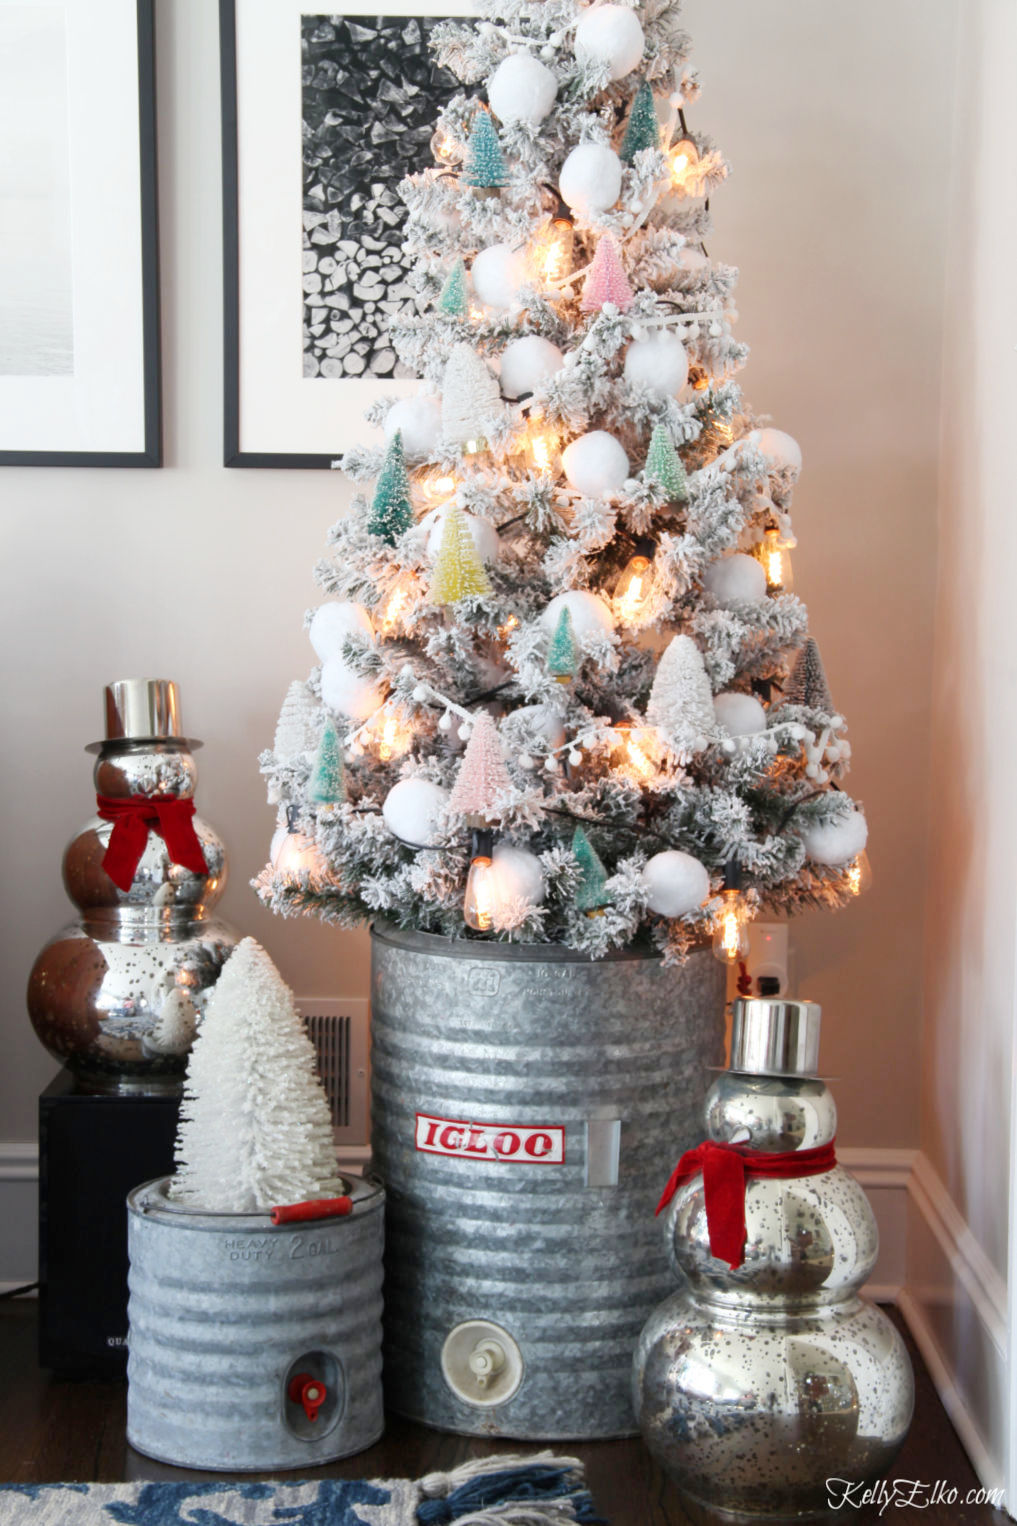 Love this flocked Christmas tree filled with little bottle brush trees kellyelko.com #vintagechristmas #christmastree #christmasdecor #thrifted #bottlebrushtree #mercuryglass #farmhousechristmas #kellyelko